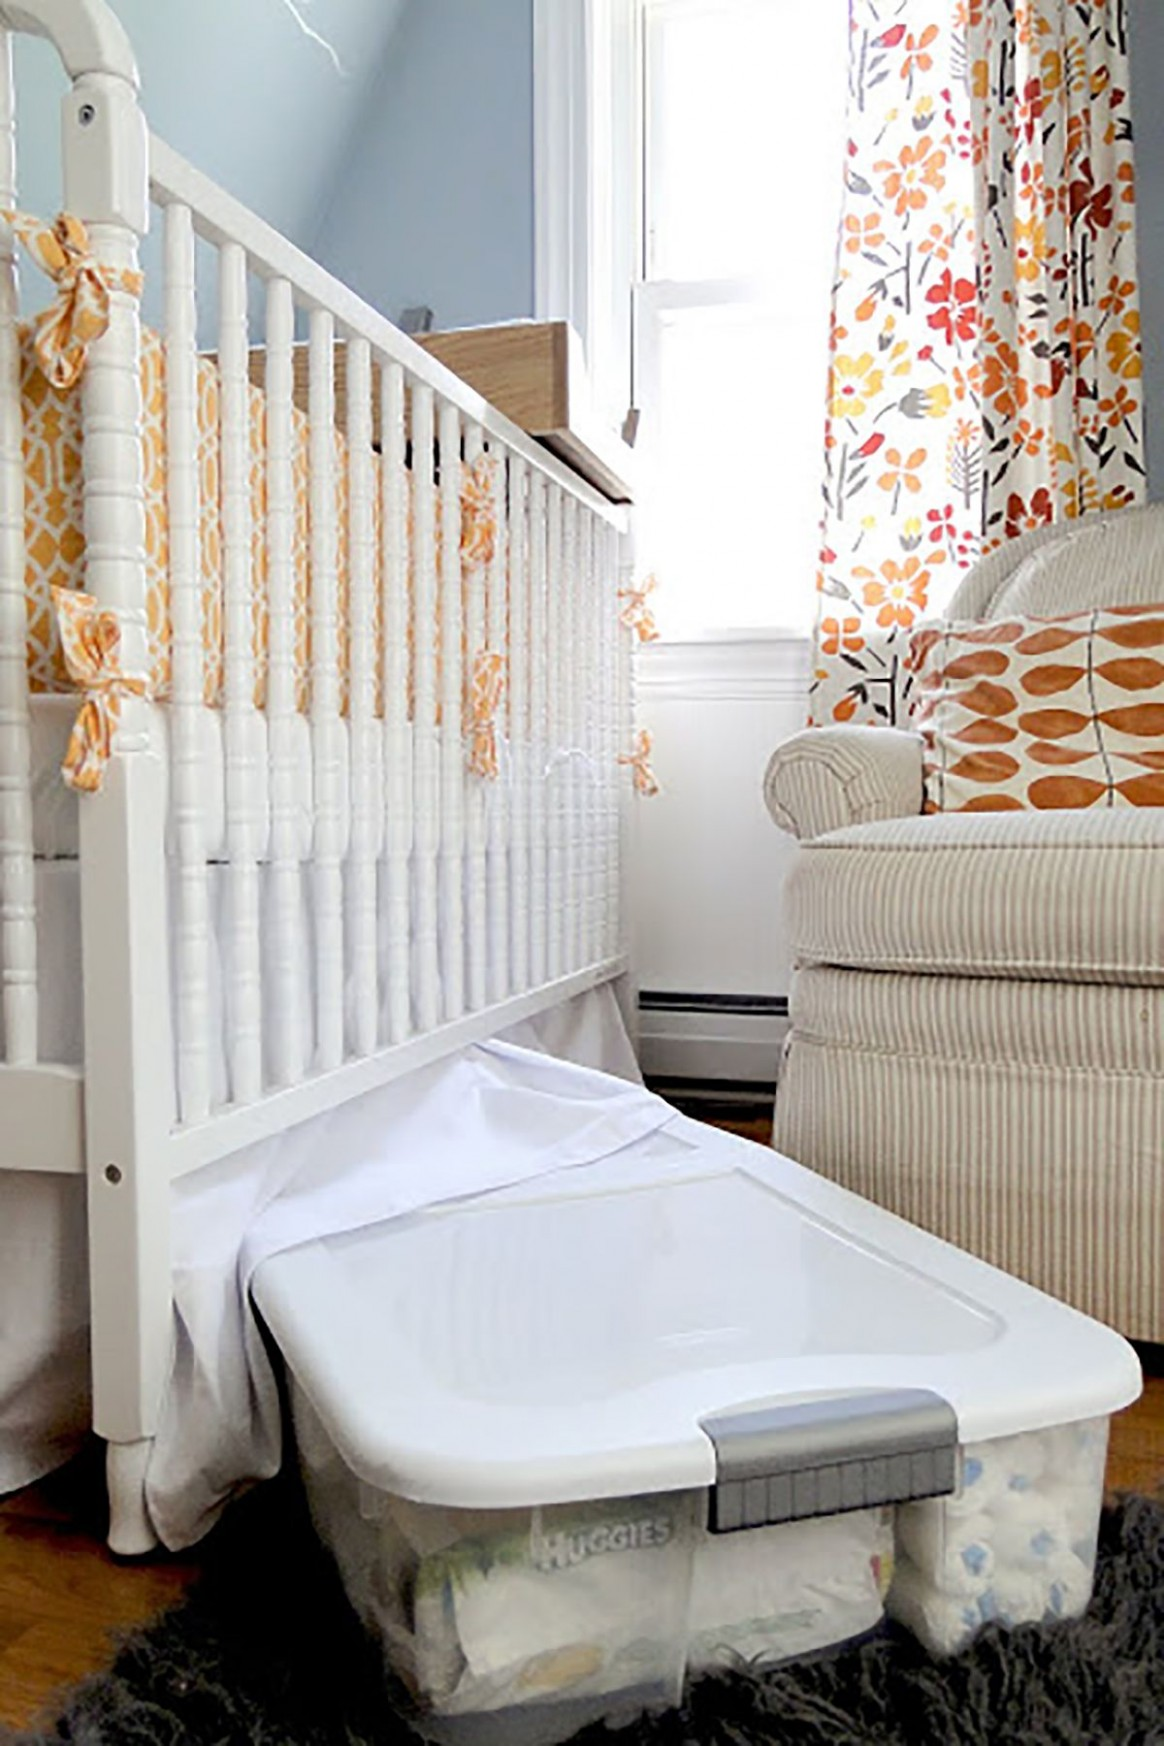 12 Best Baby Room Ideas - Nursery Design, Organization, and  - Baby Room Pictures